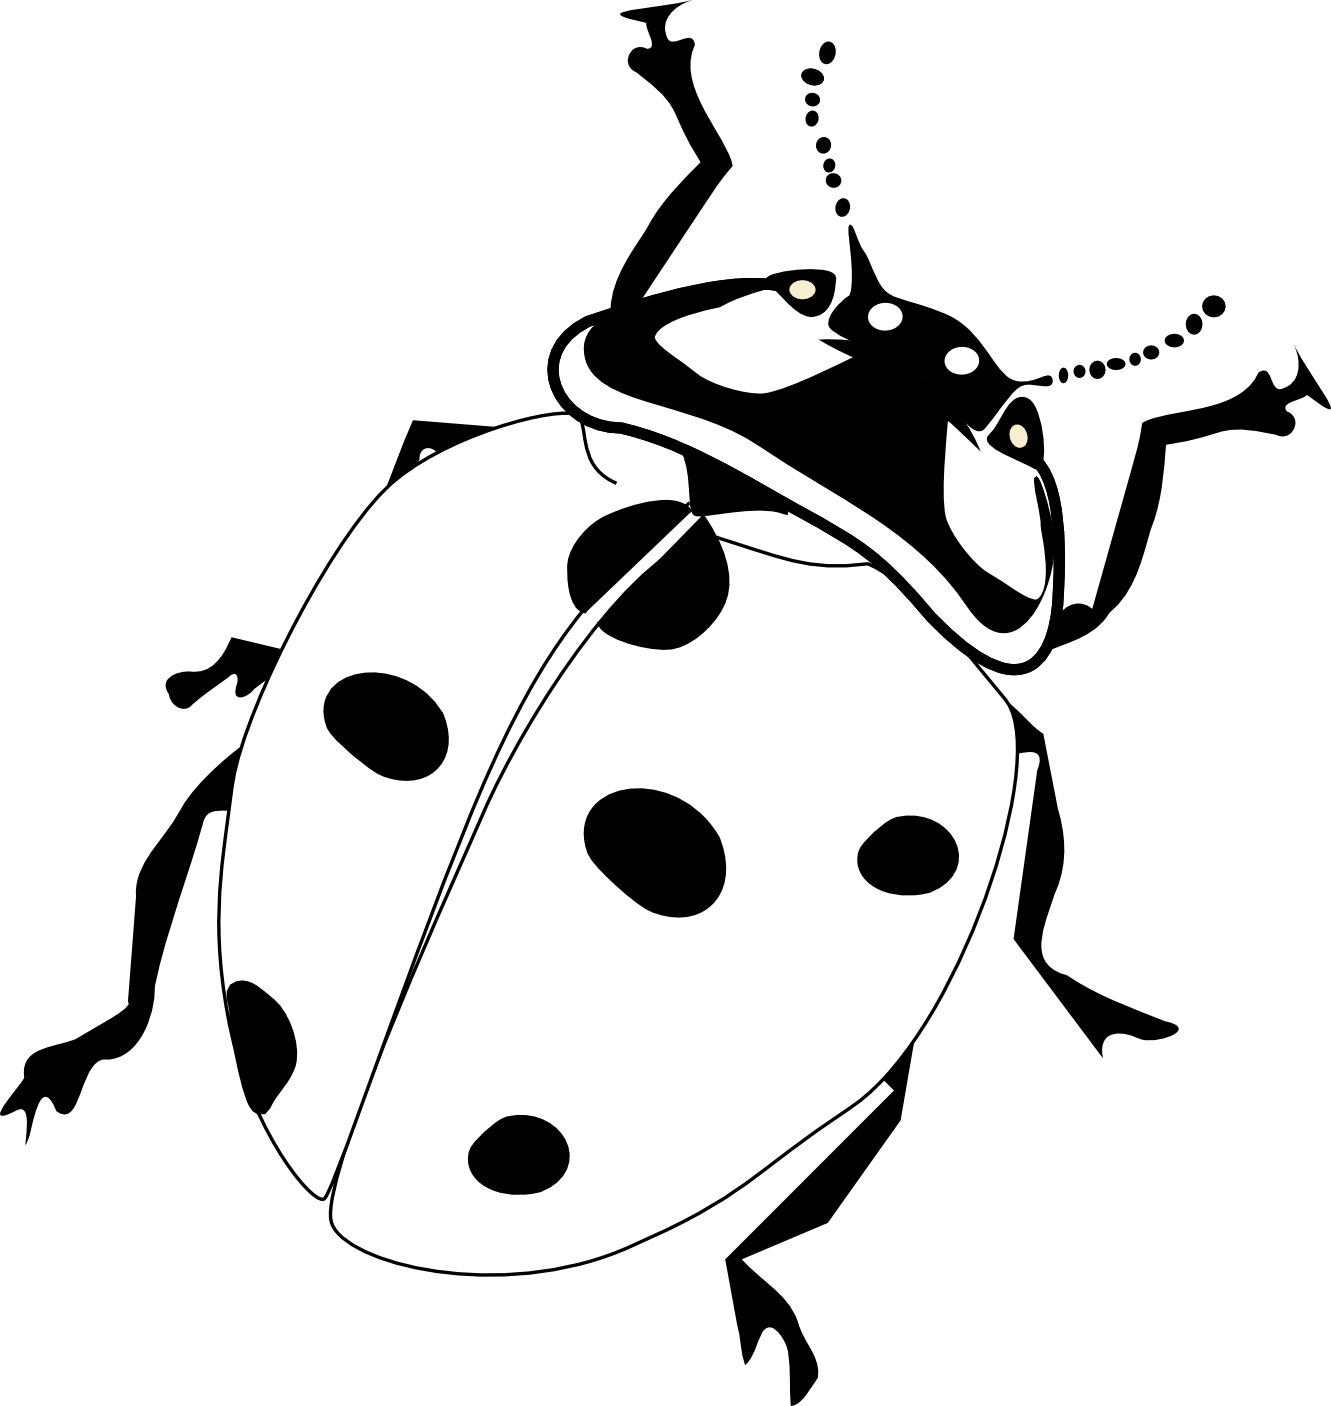 Ladybug clipart sketch. Realistic ladybird drawing google